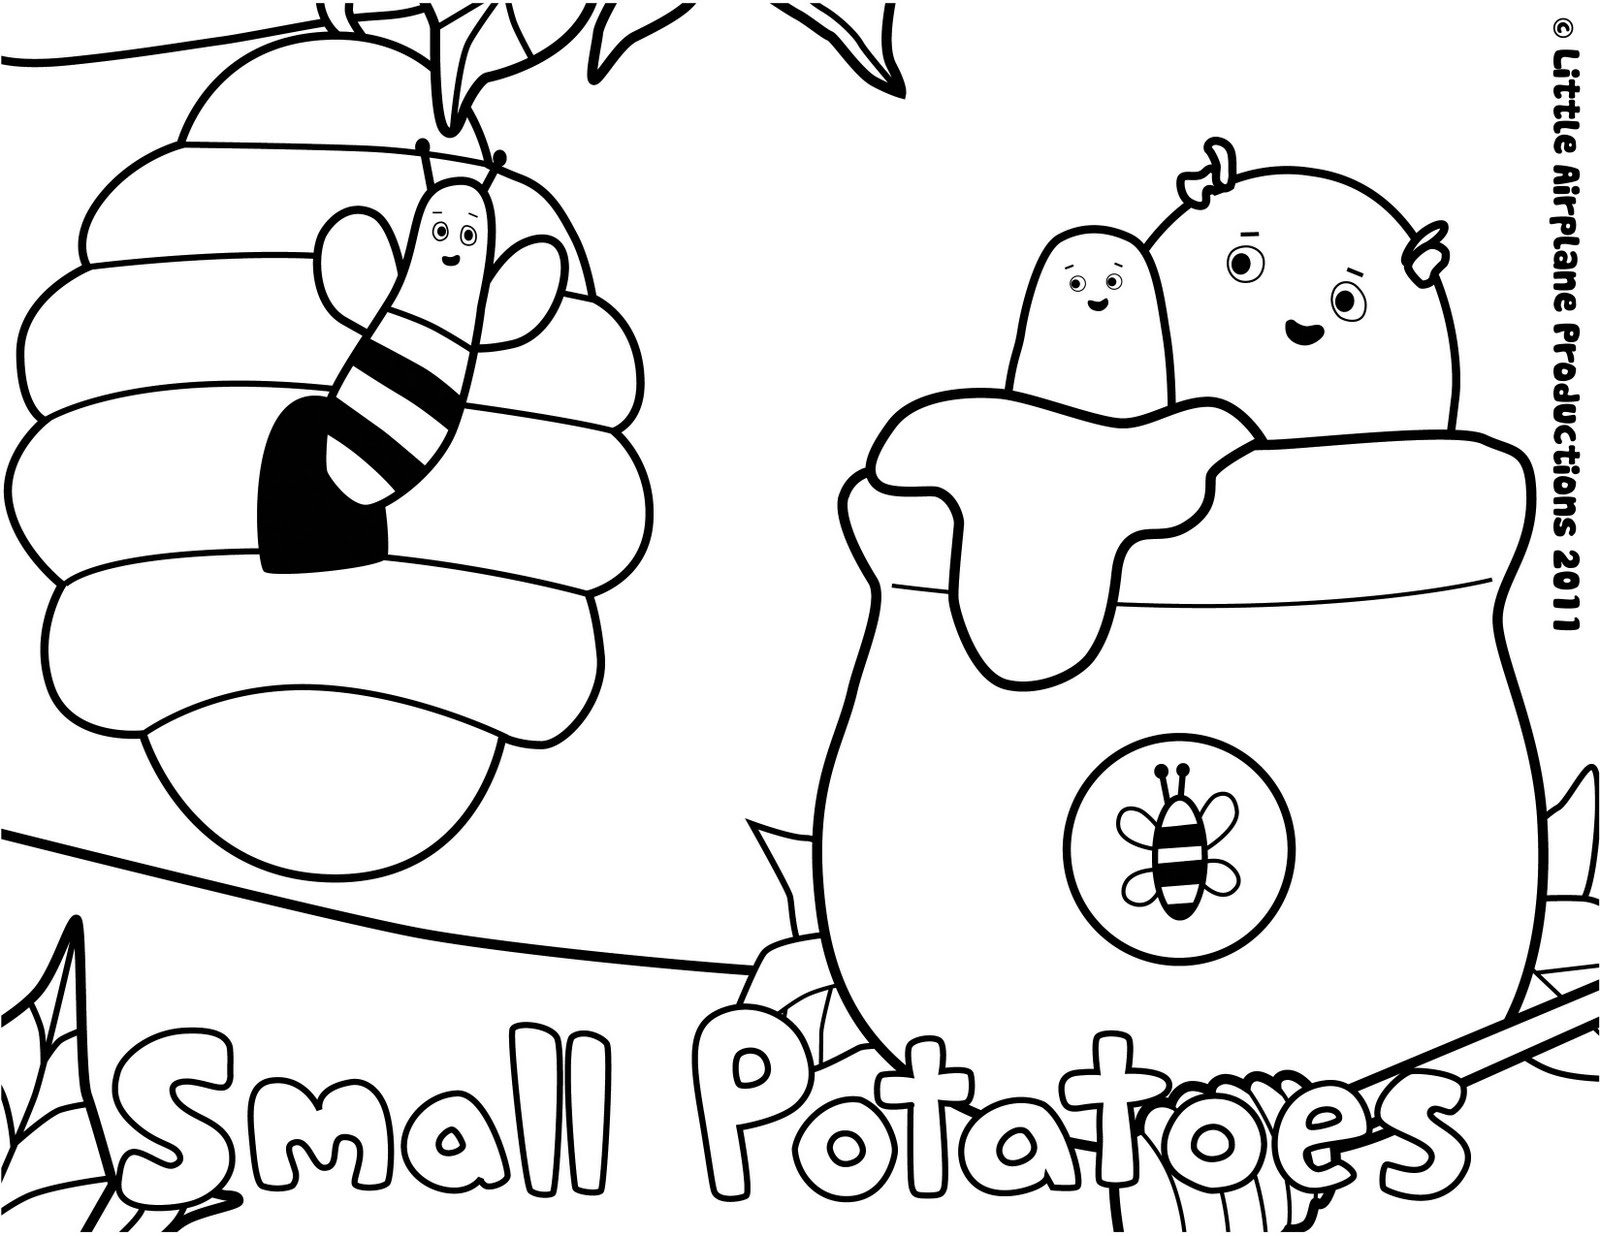 here are several coloring pages i made in illustrator of the small potatoes they can be downloaded and printed at disney jr - Disney Jr Coloring Pages Print